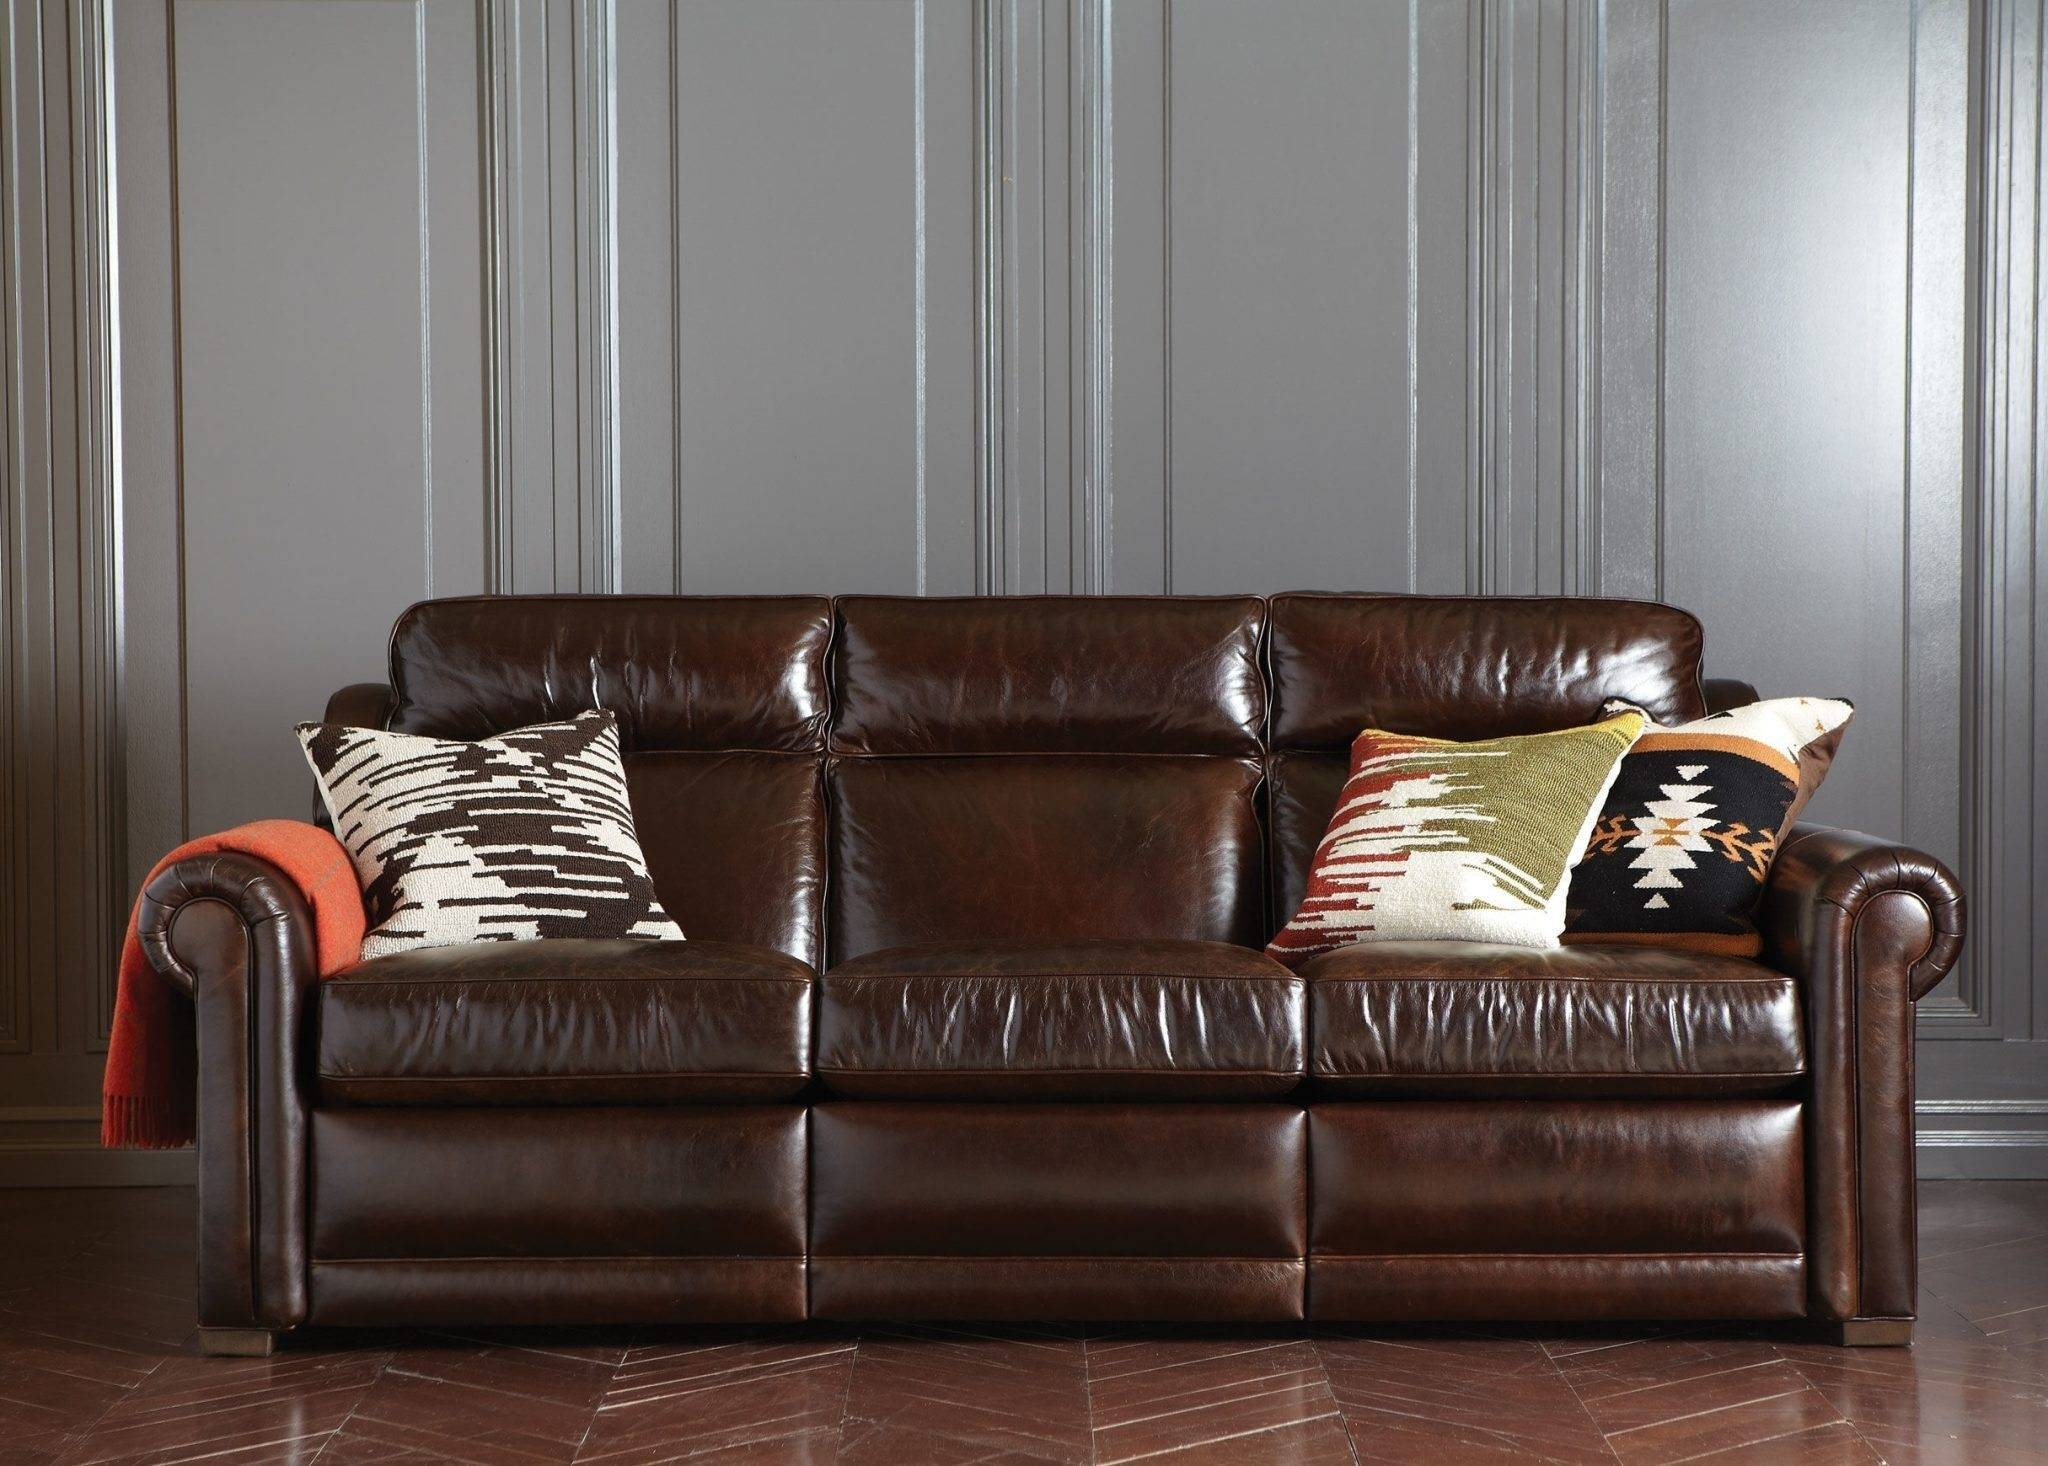 Sleeper Sofa San Diego With Concept Hd Images 17864 | Kengire With Regard To Sleeper Sofas San Diego (View 17 of 25)